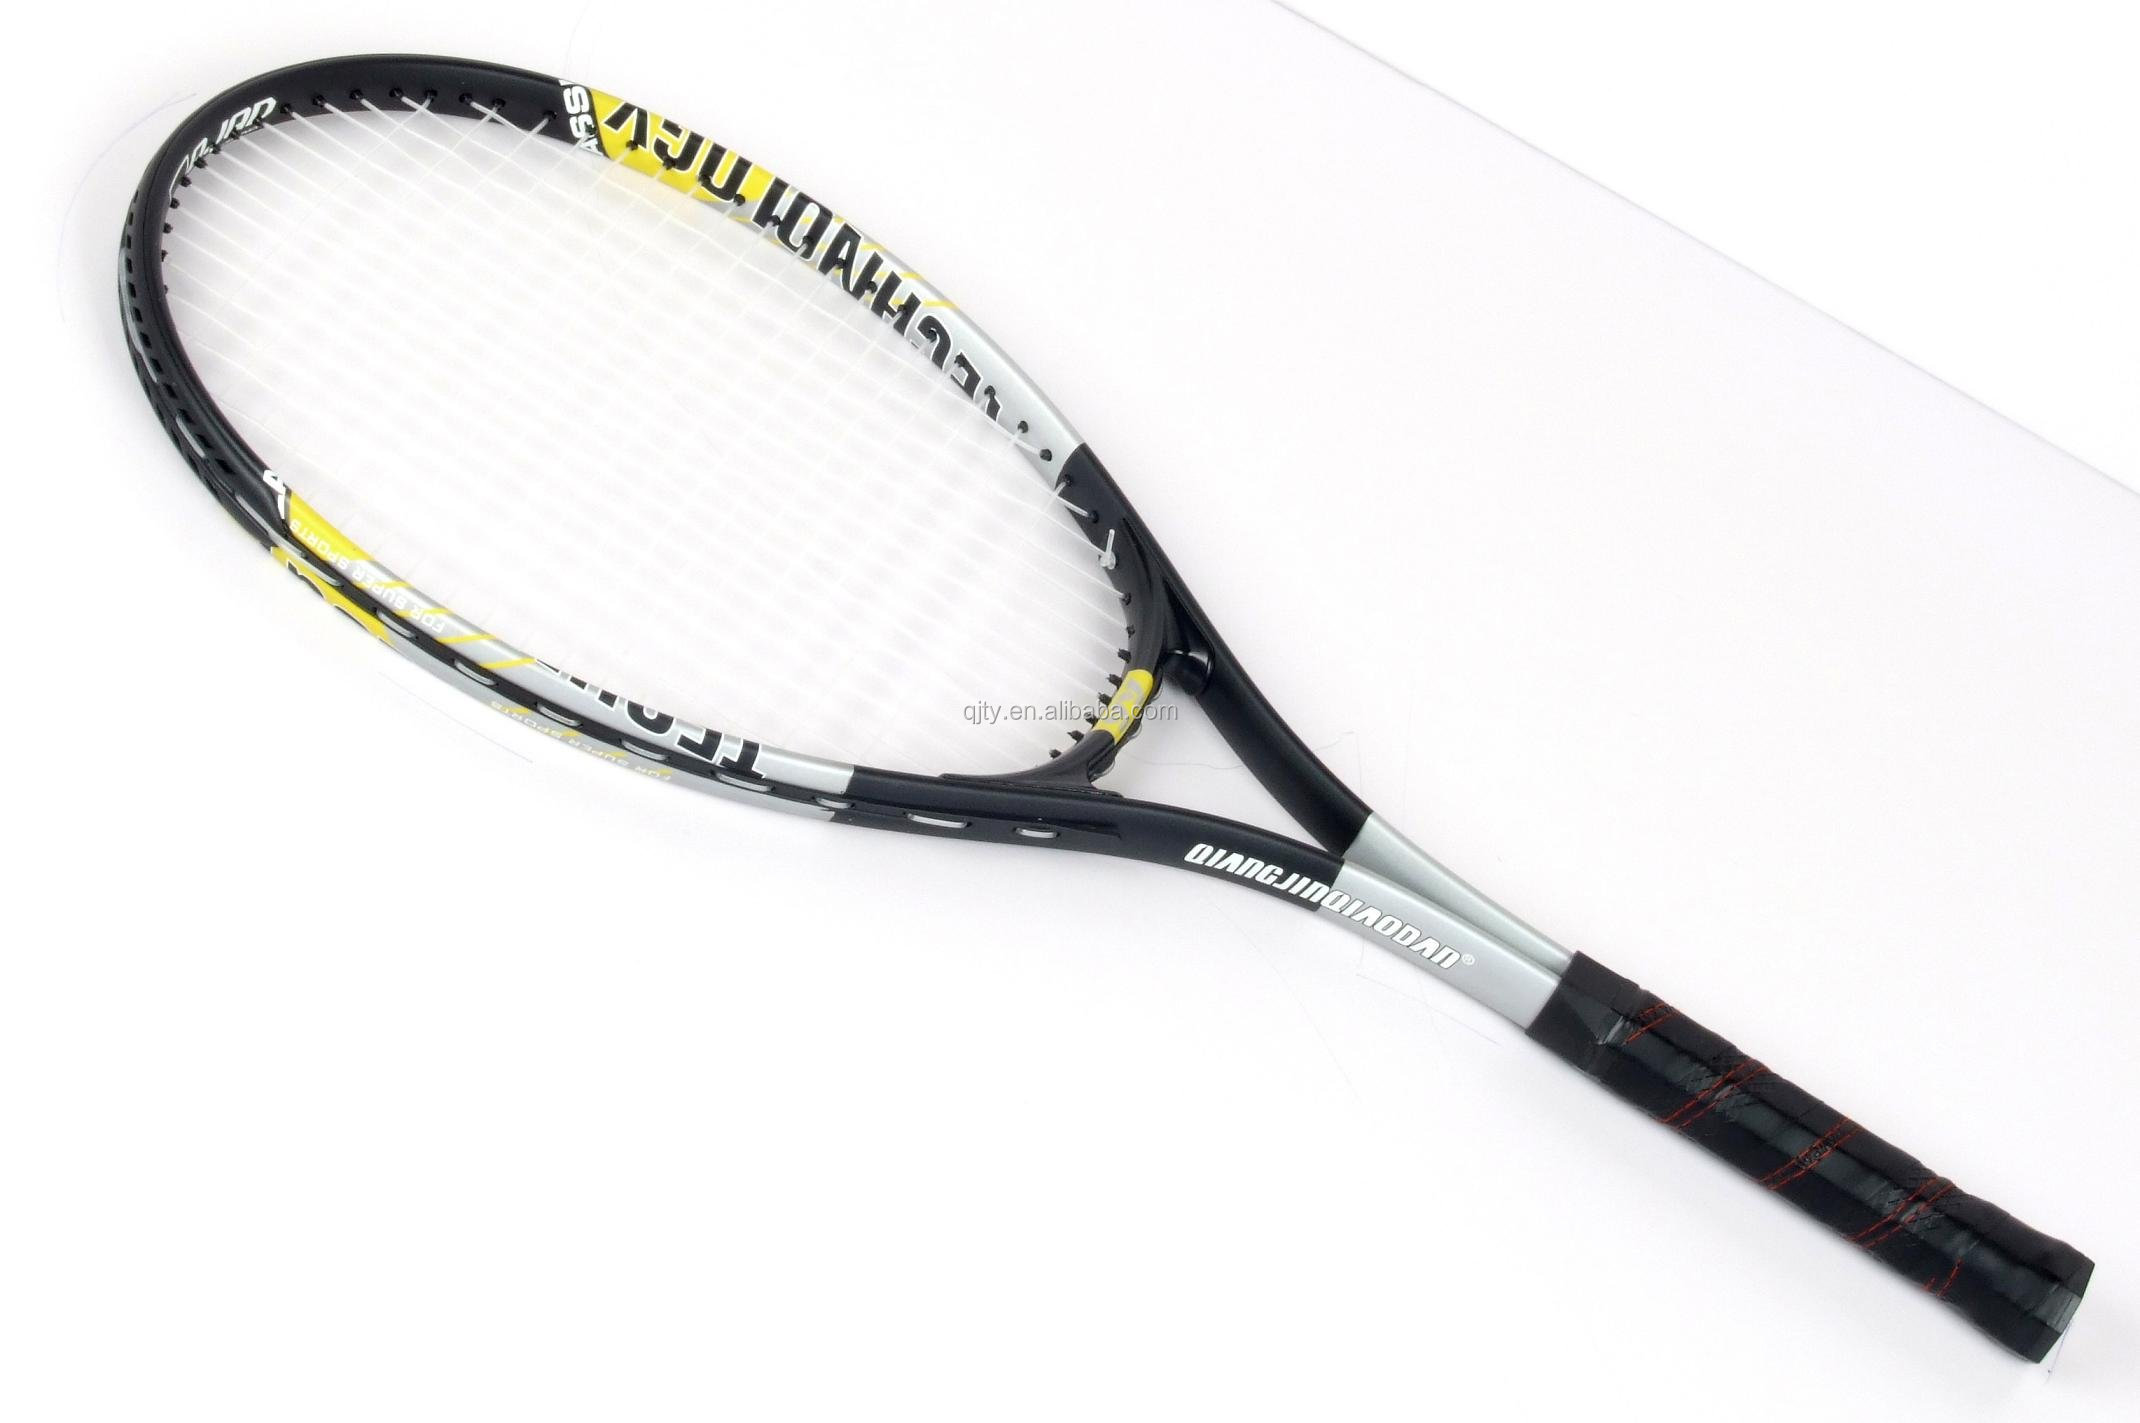 Hot selling aluminum tennis racket with cheap price